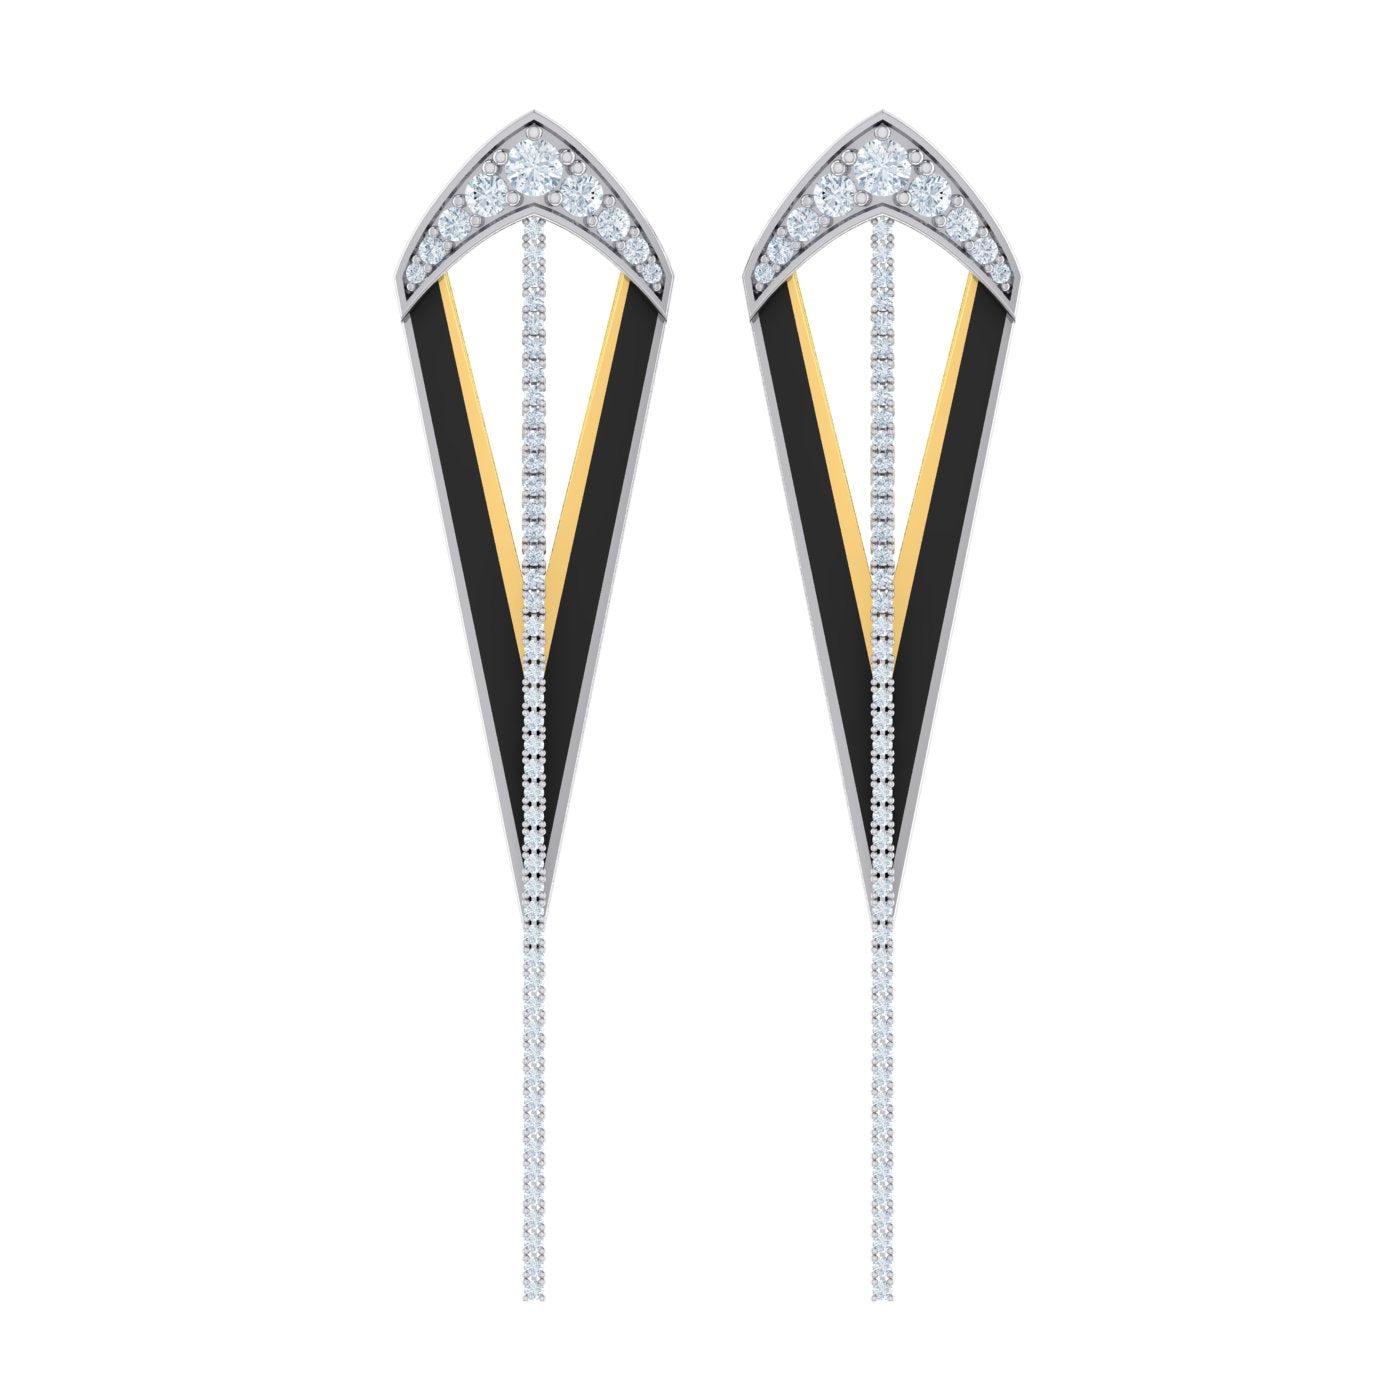 Diamond earrings by Herald Diamond Couture